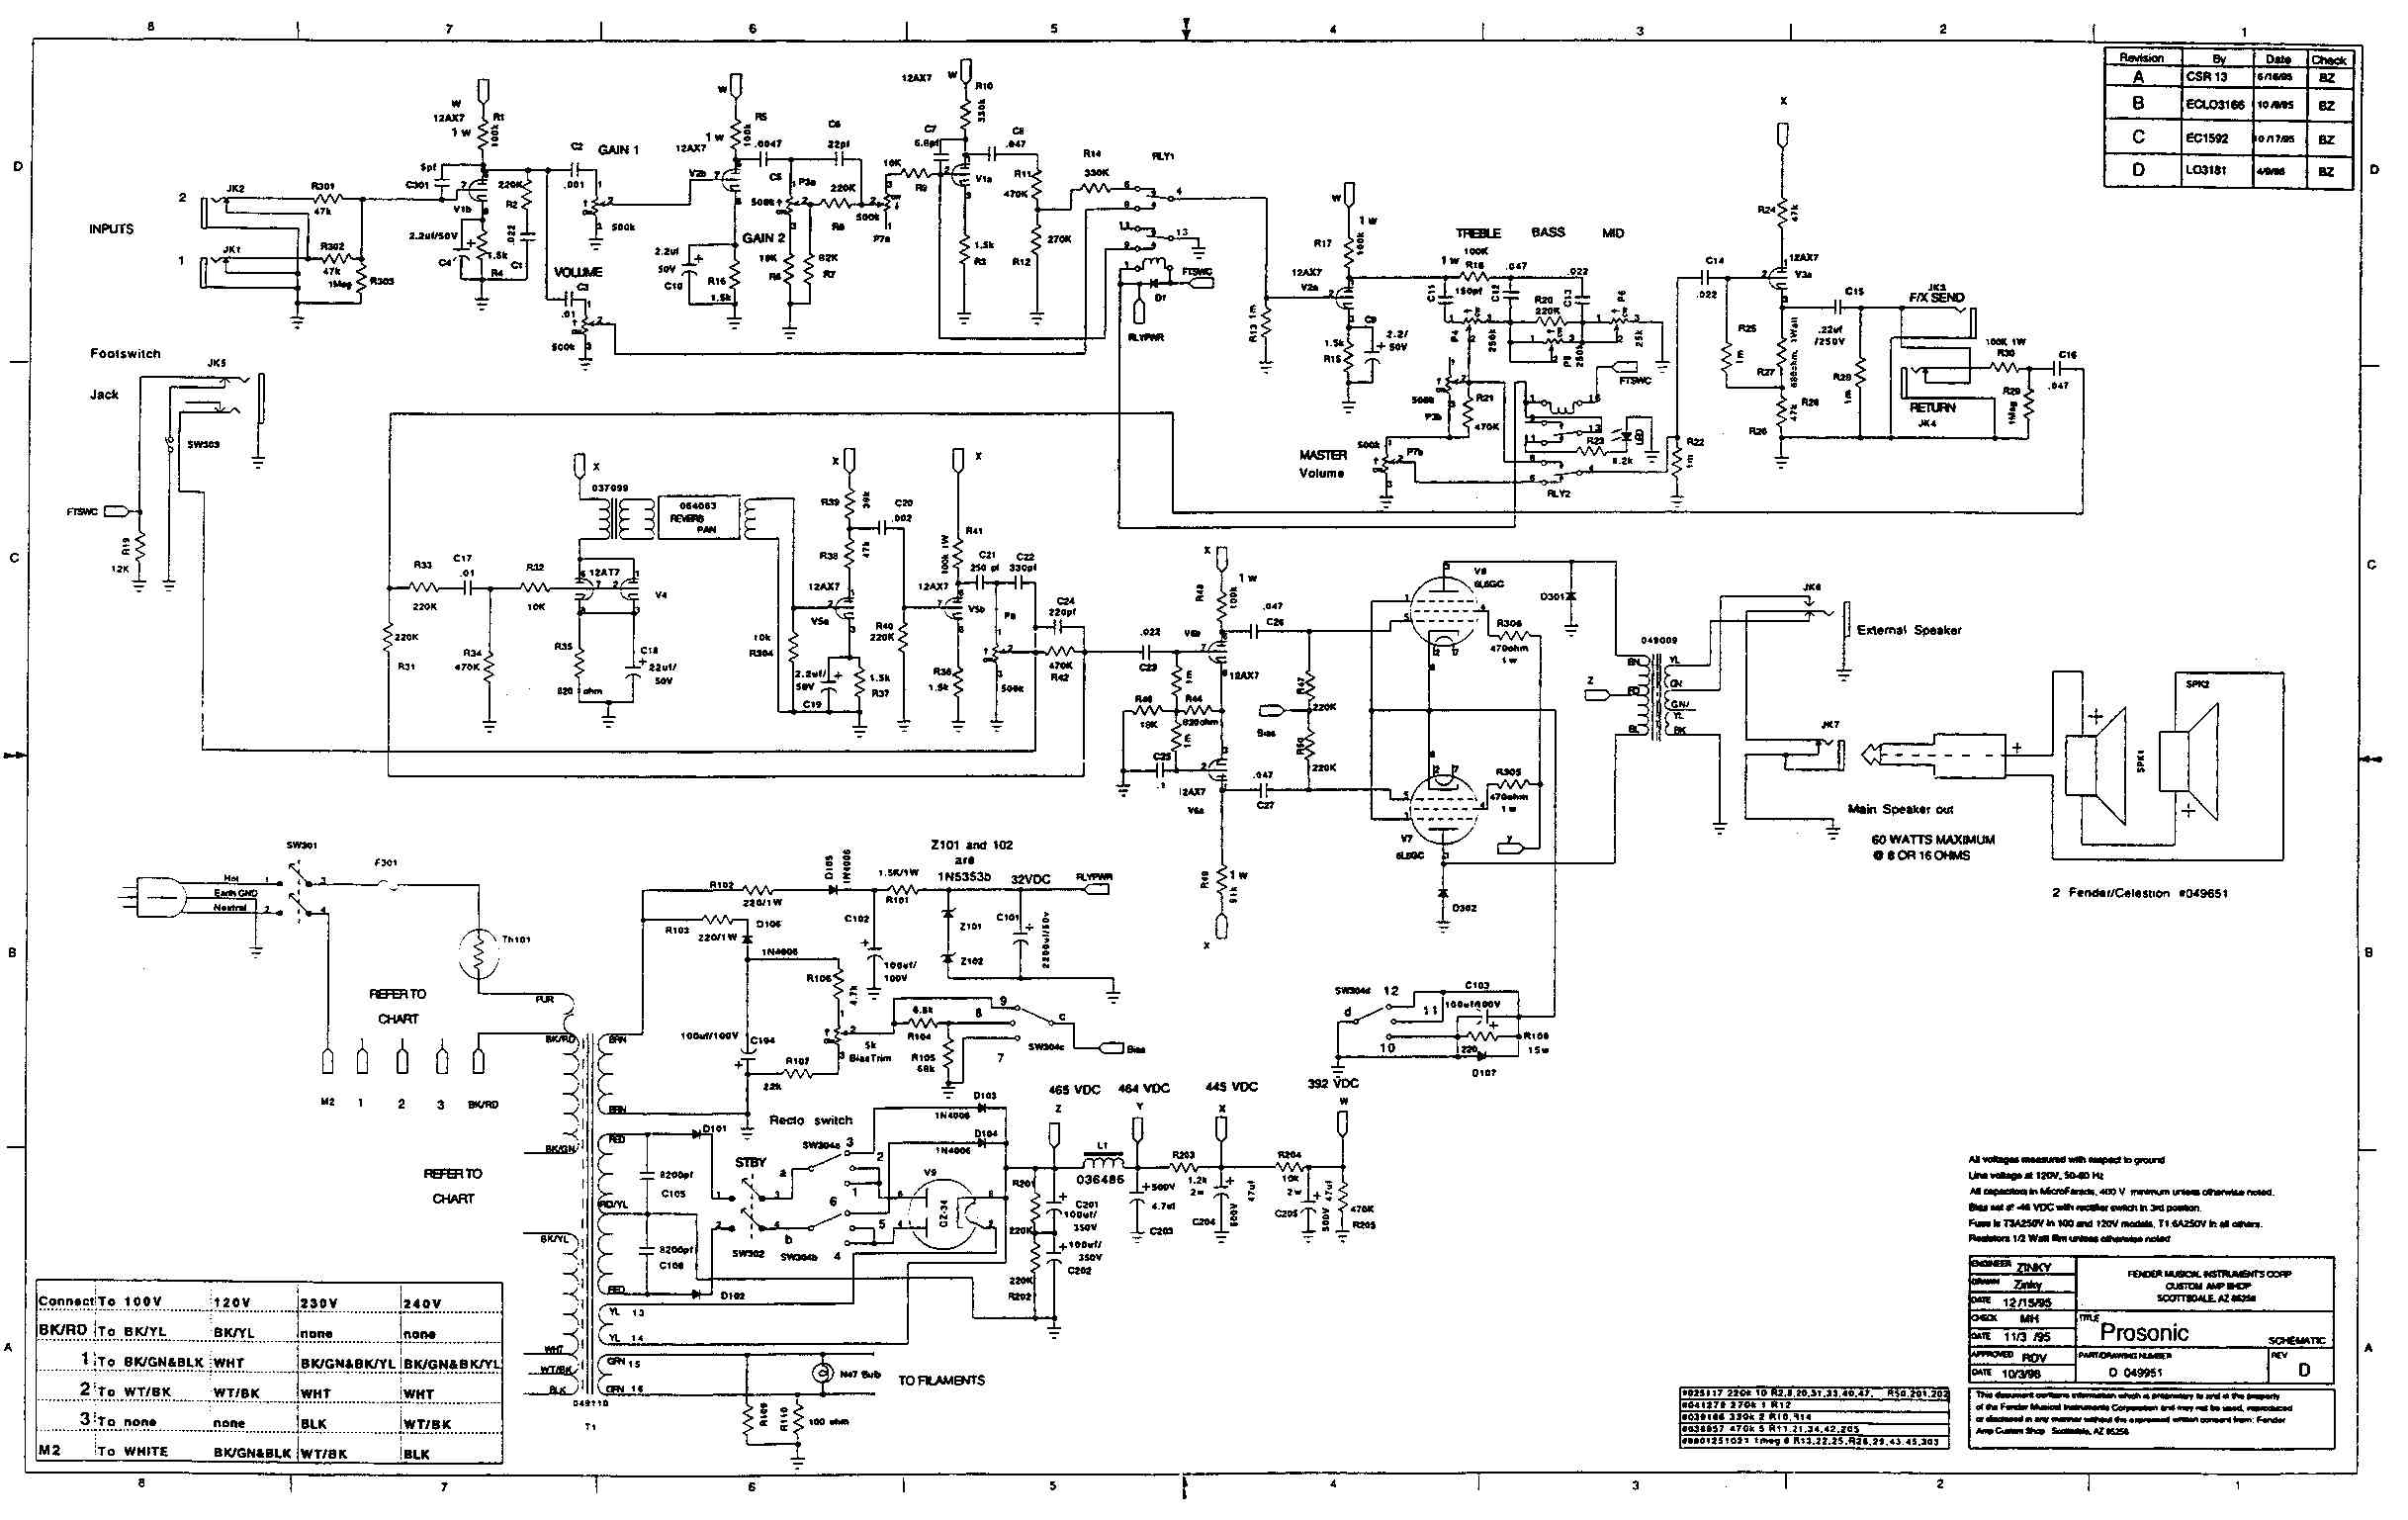 Mustang Ii Fender Amp Schematic Model Pr825 Trusted Wiring Diagrams Iv Schematics Example Electrical Circuit U2022